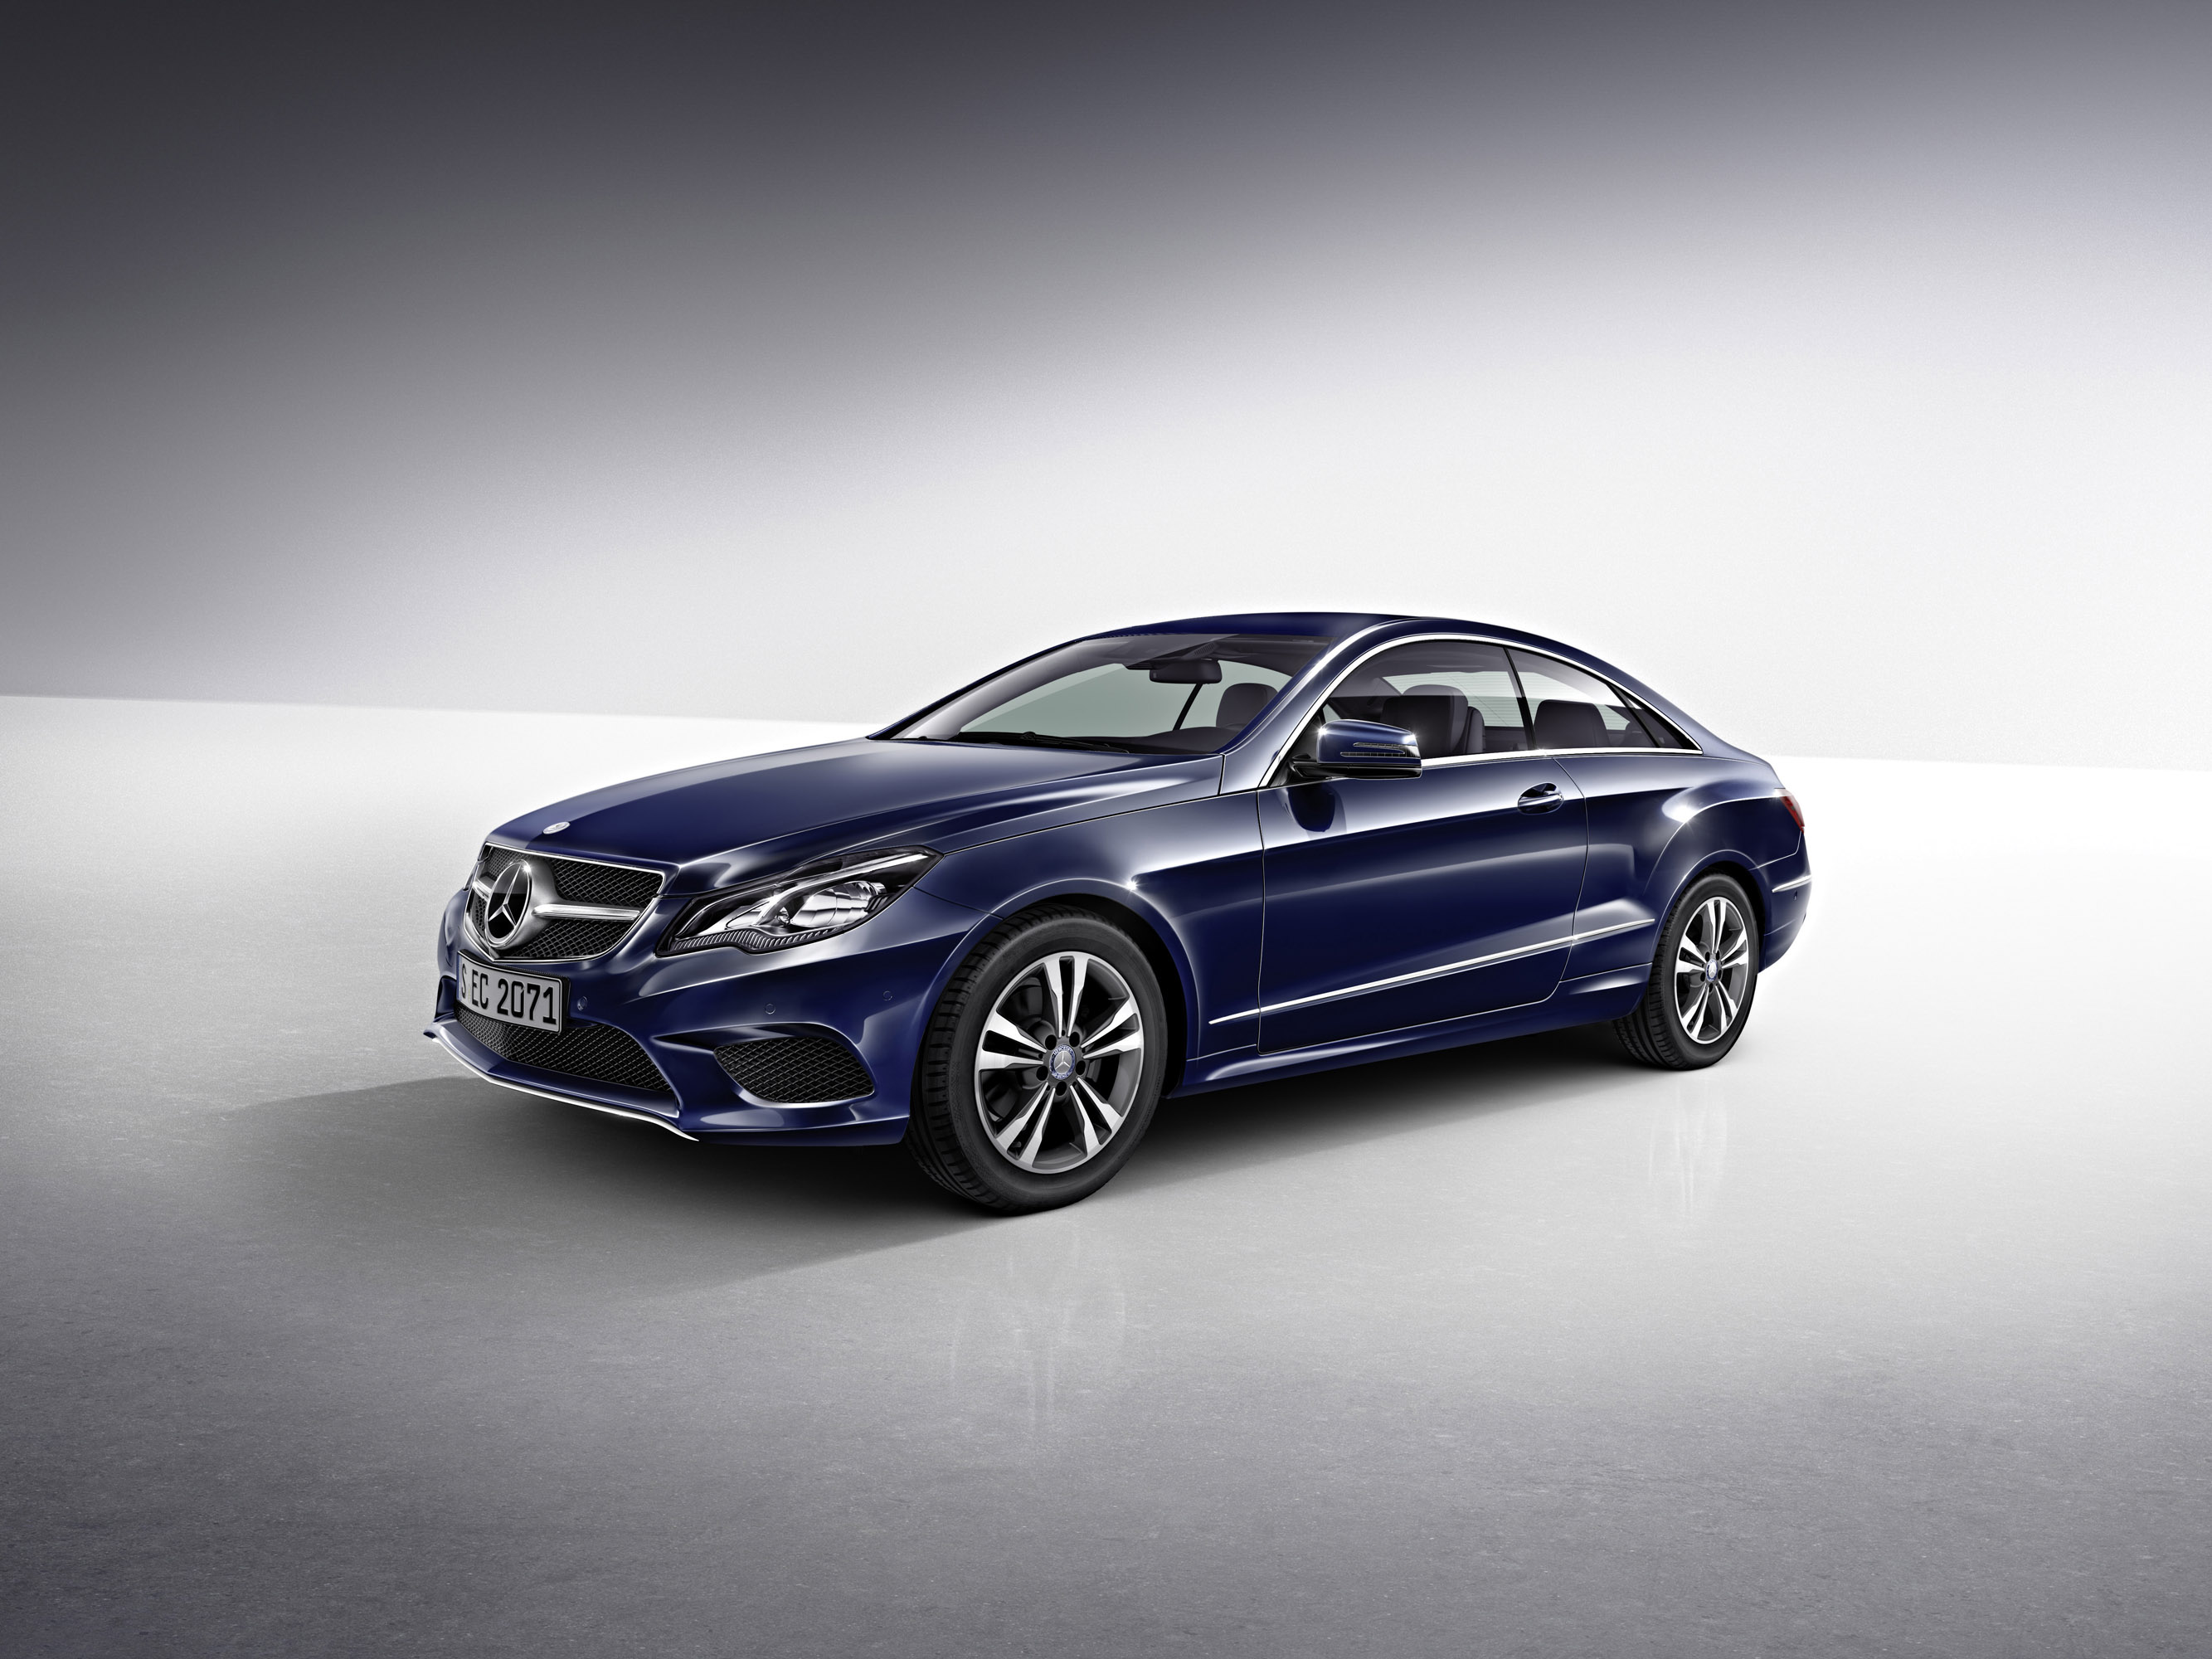 2014 mercedes benz e class coupe hd pictures for Mercedes benz e coupe 2014